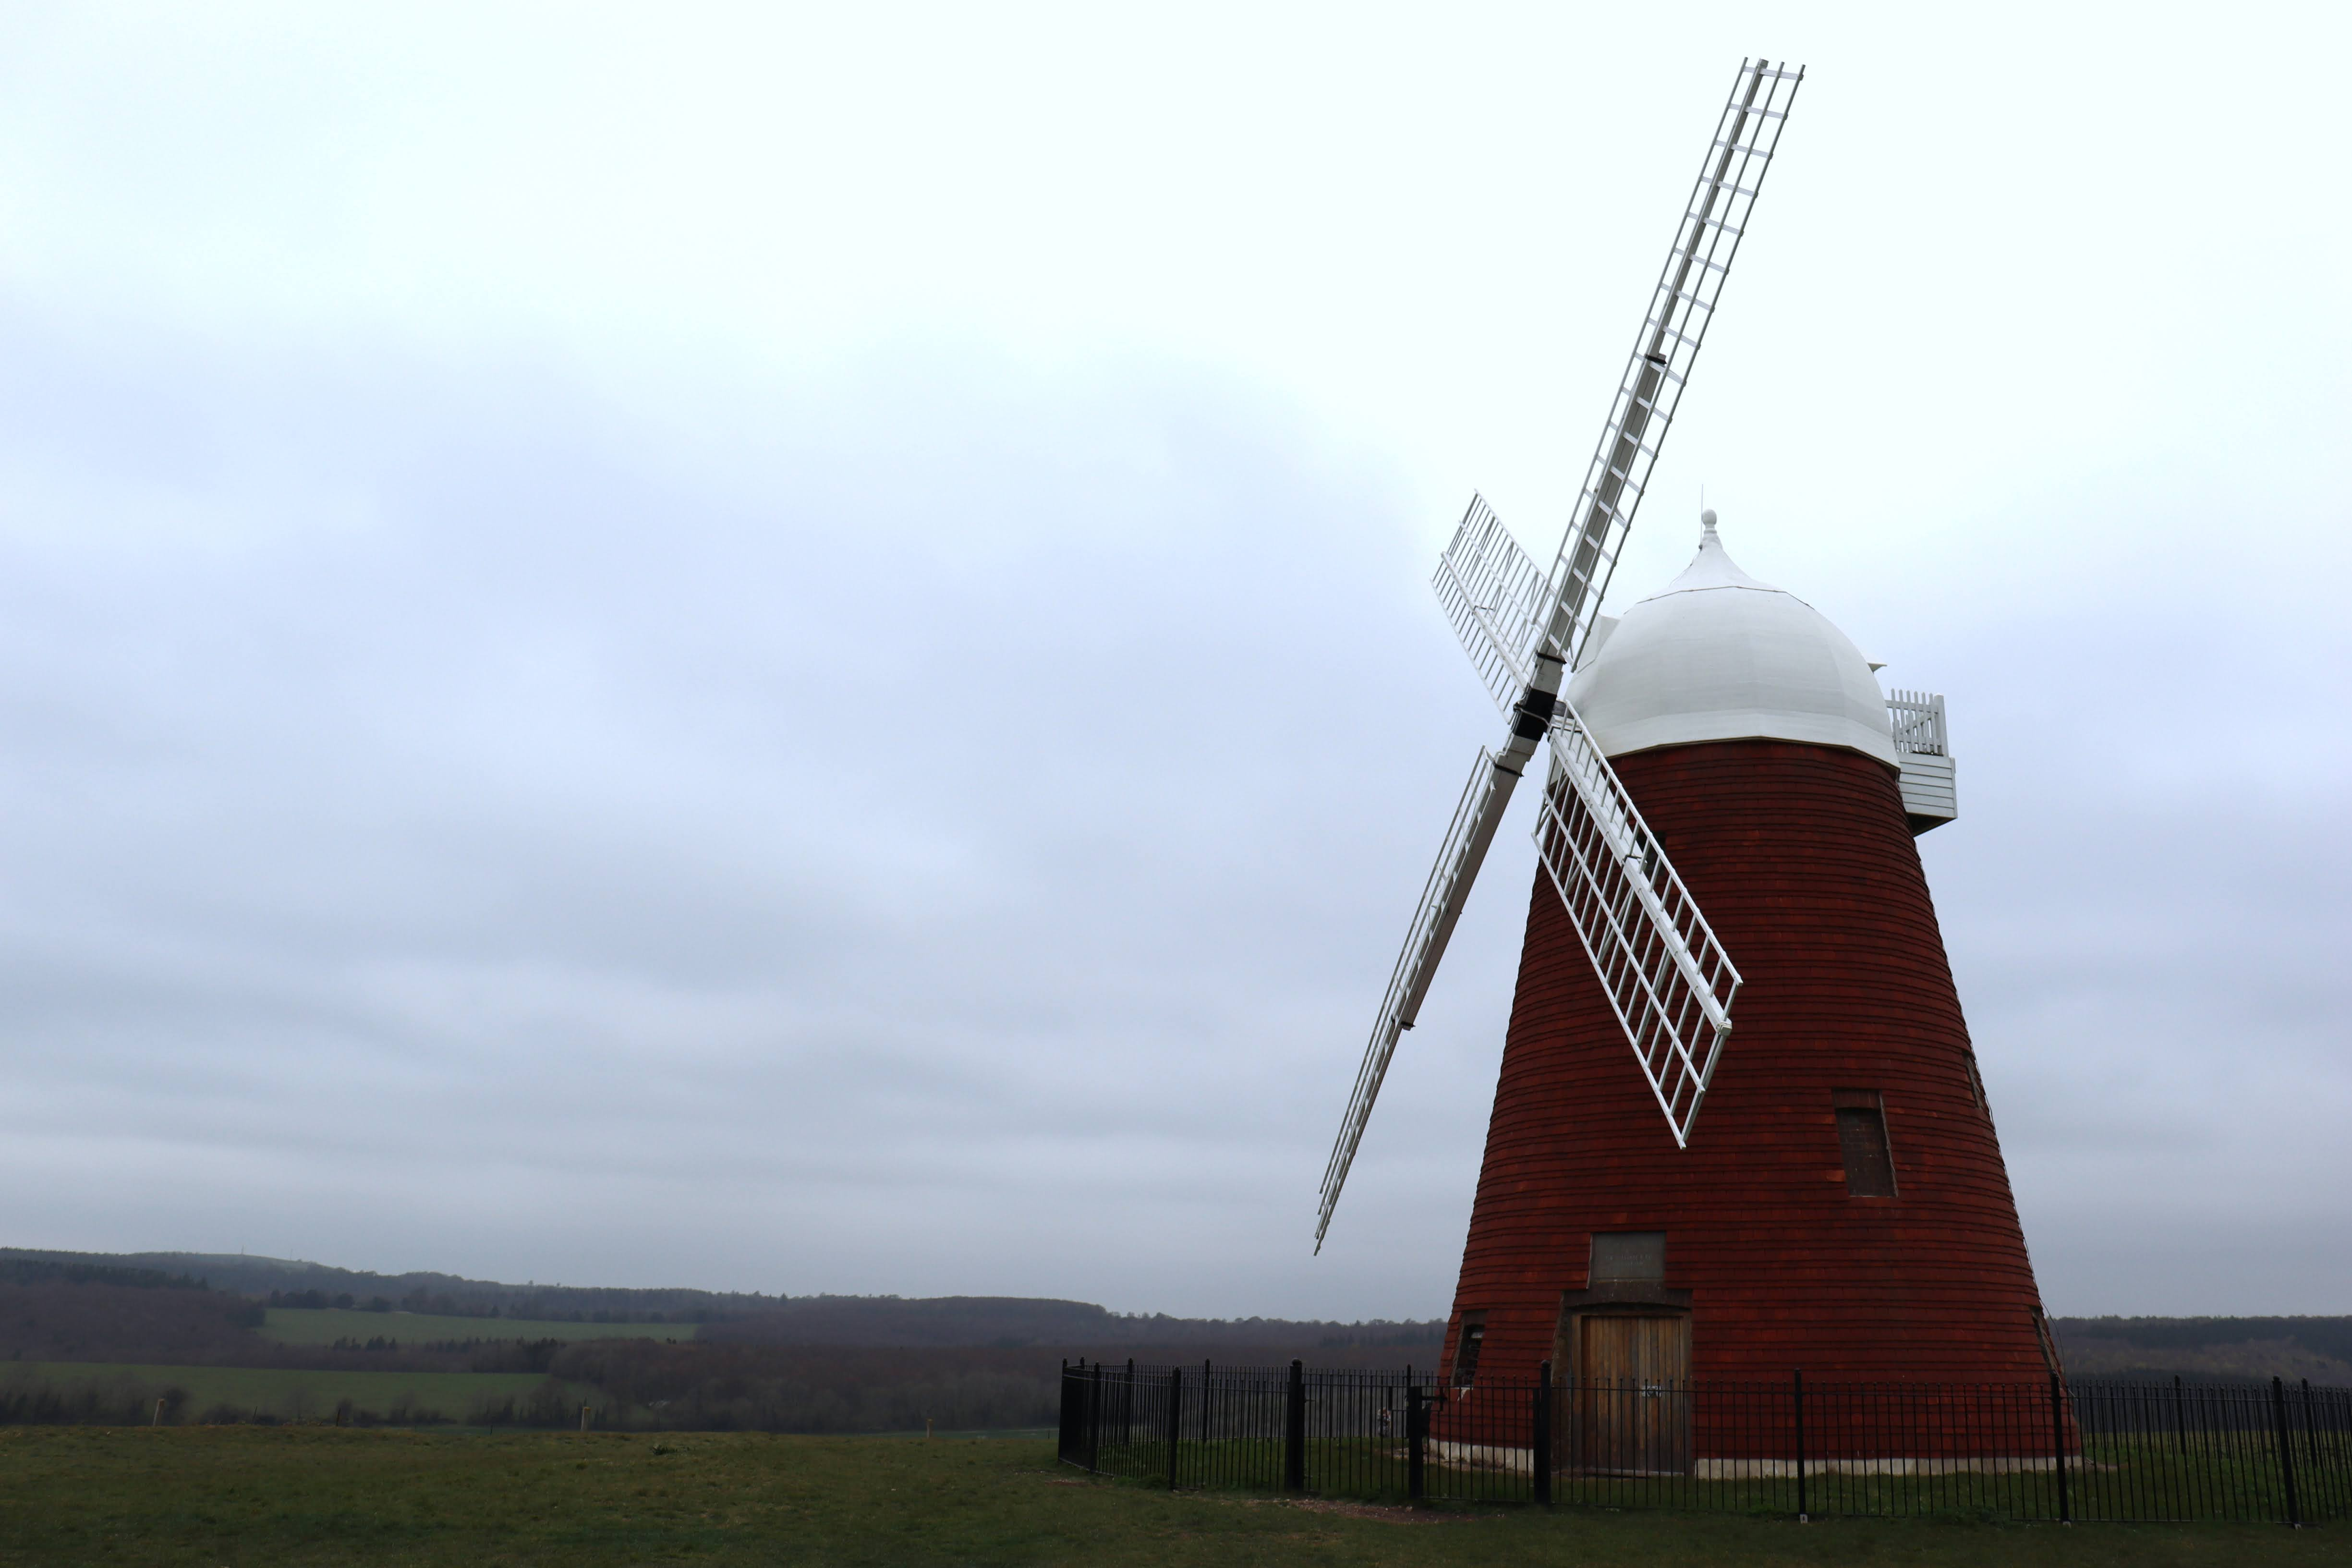 The red and white Halnaker Mill from a 45 degree angle. Surrounded by green grass and hills in the background.